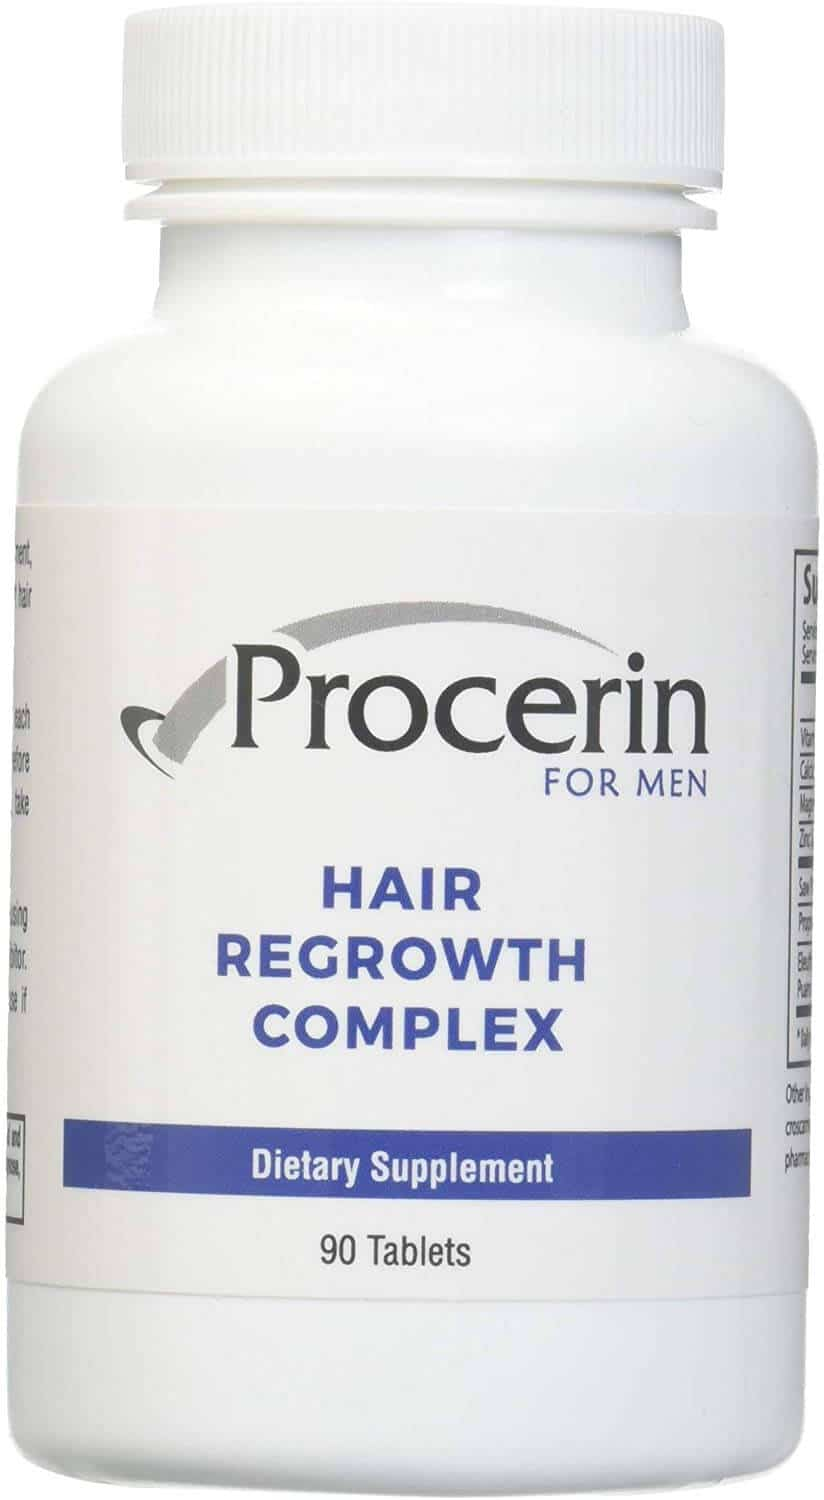 procerin-bottle